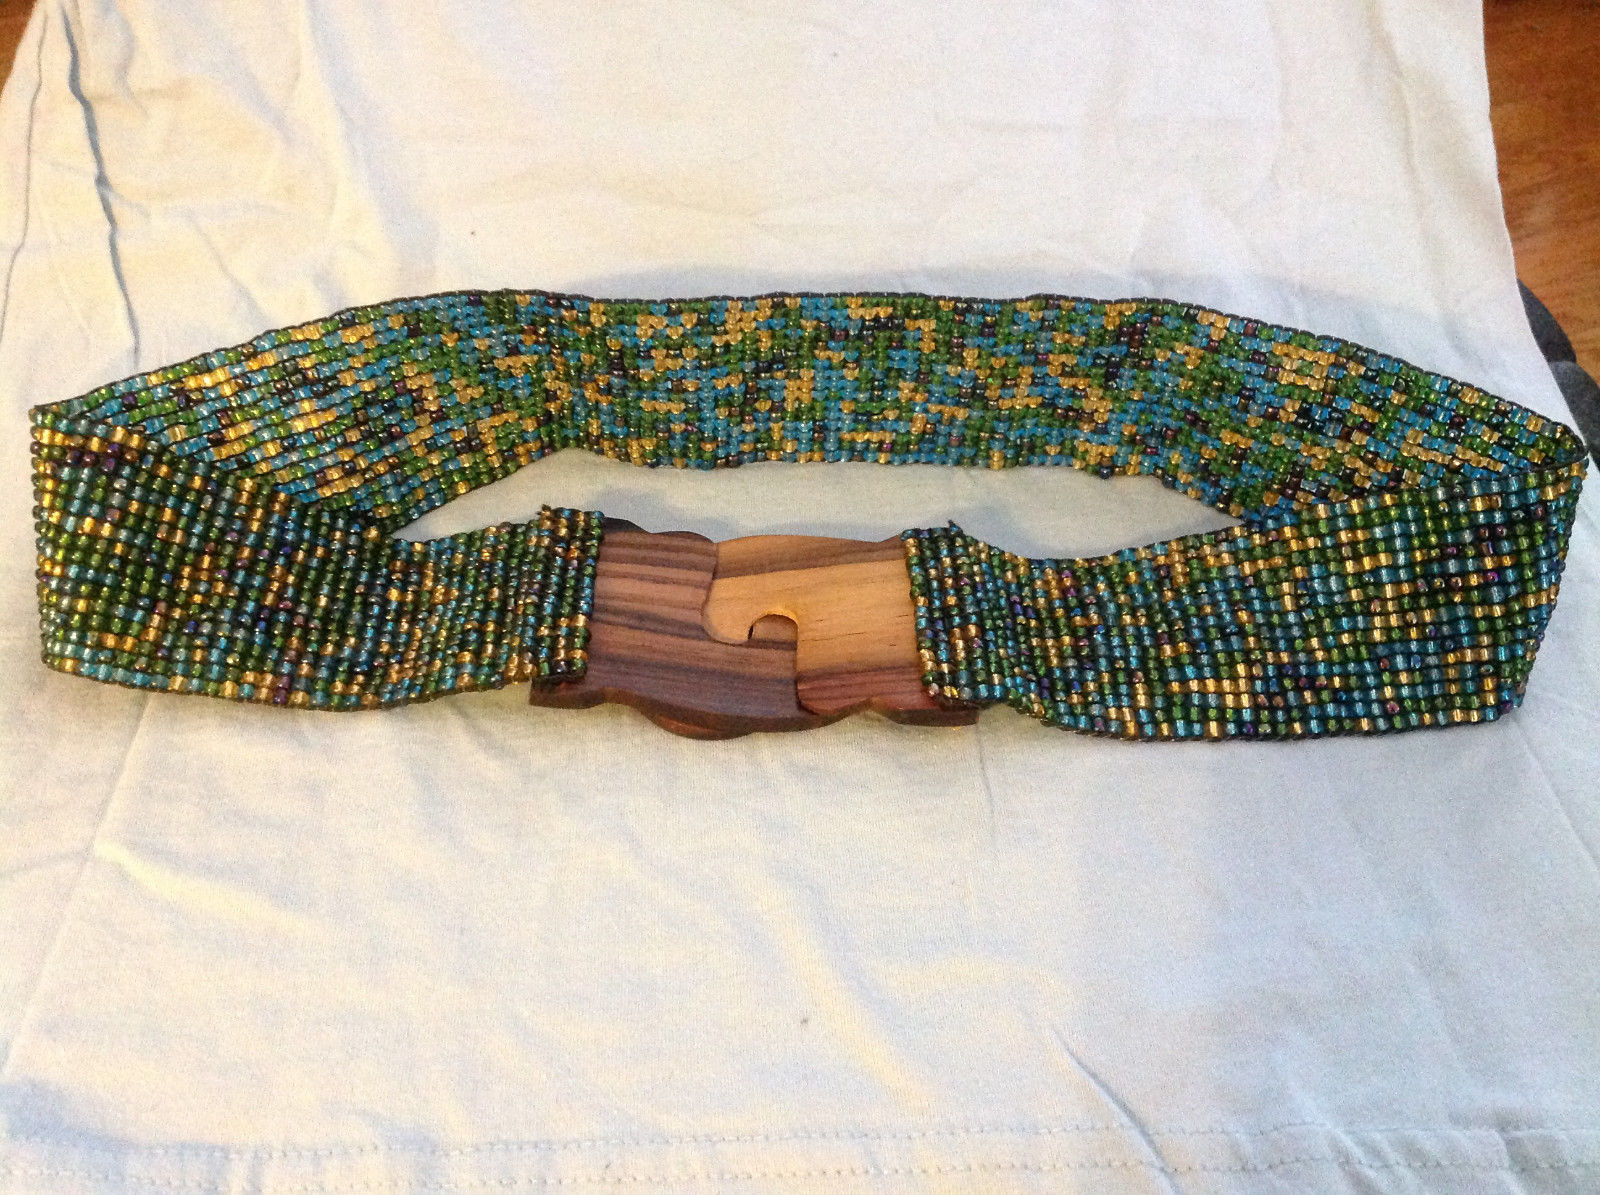 Green blue yellow beaded elastic belt wood closure slips together to close